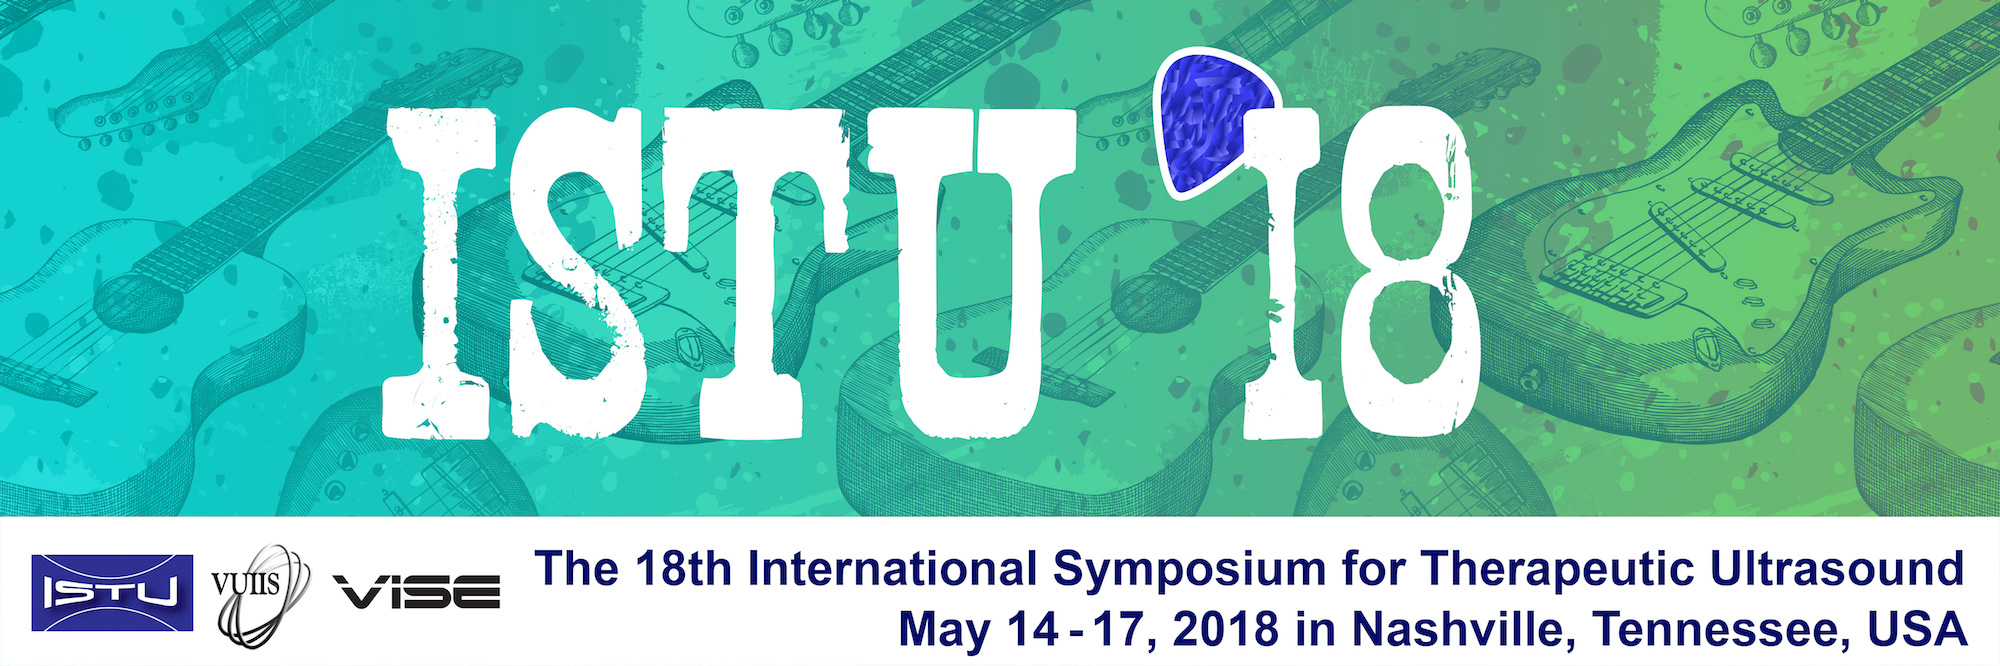 International Society for Therapeutic Ultrasound